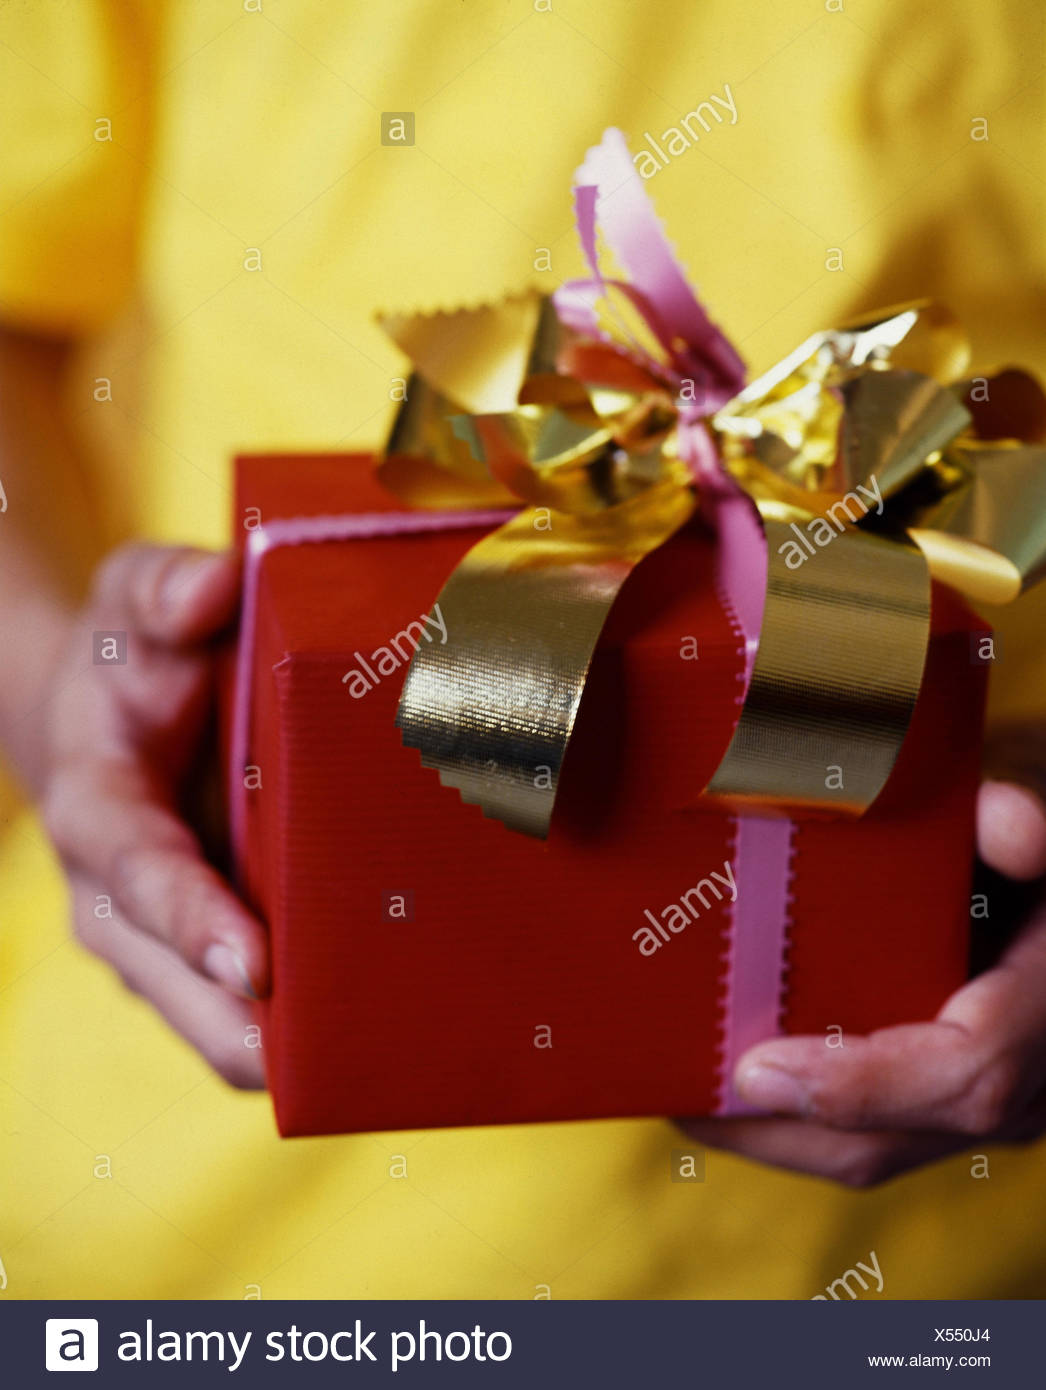 Man Young Detail Hands Present Hold Birthday Christmas Surprise Give Hand Accept Receive Gift Cardboard